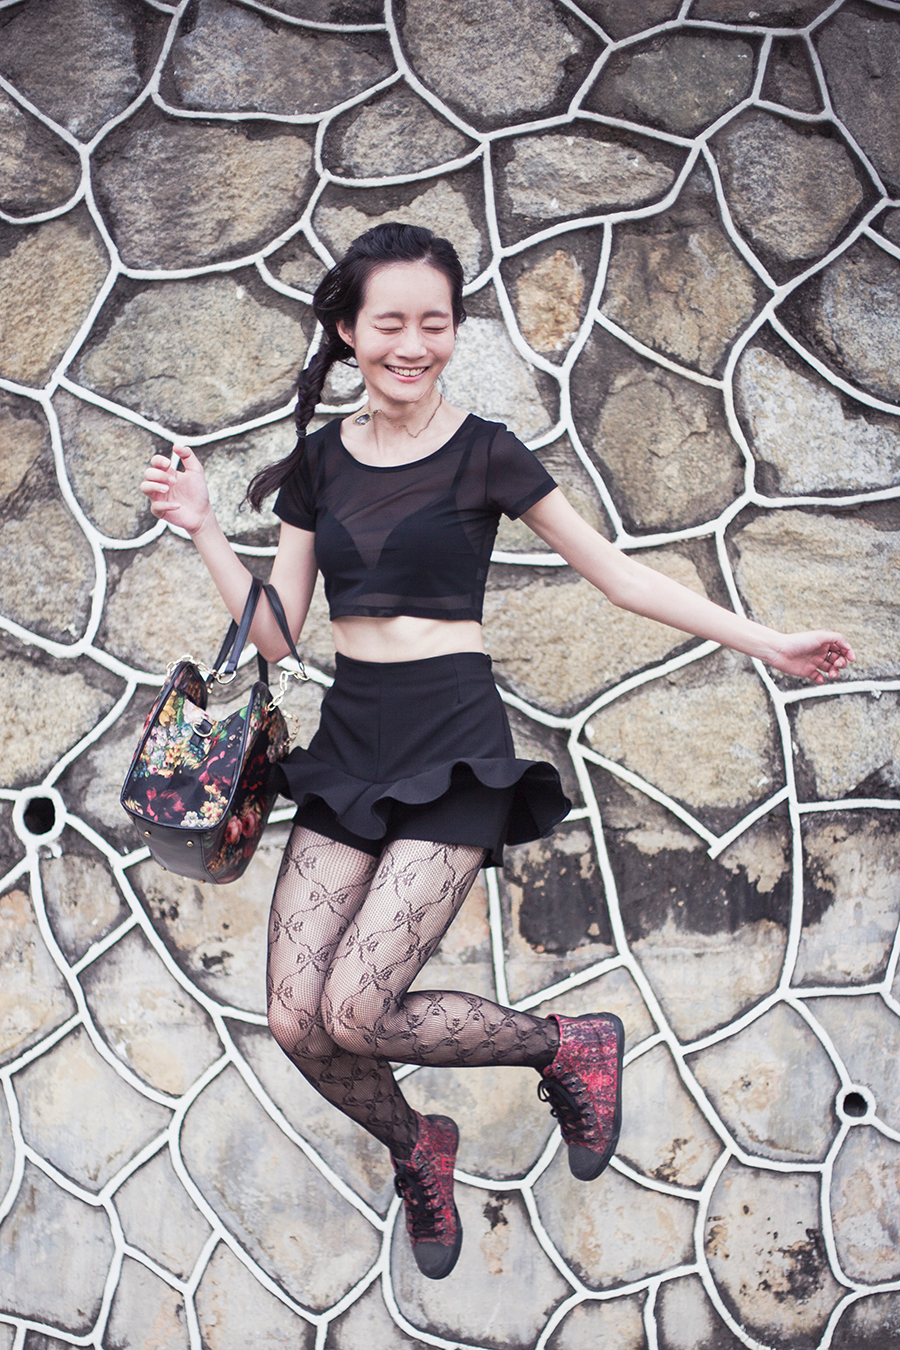 WholesaleBuying mesh crop top, Uniqlo bra, Topshop ribbon lace tights, Dressin floral bag, McQ x Puma high top sneakers, Simply Willow emerald necklace.